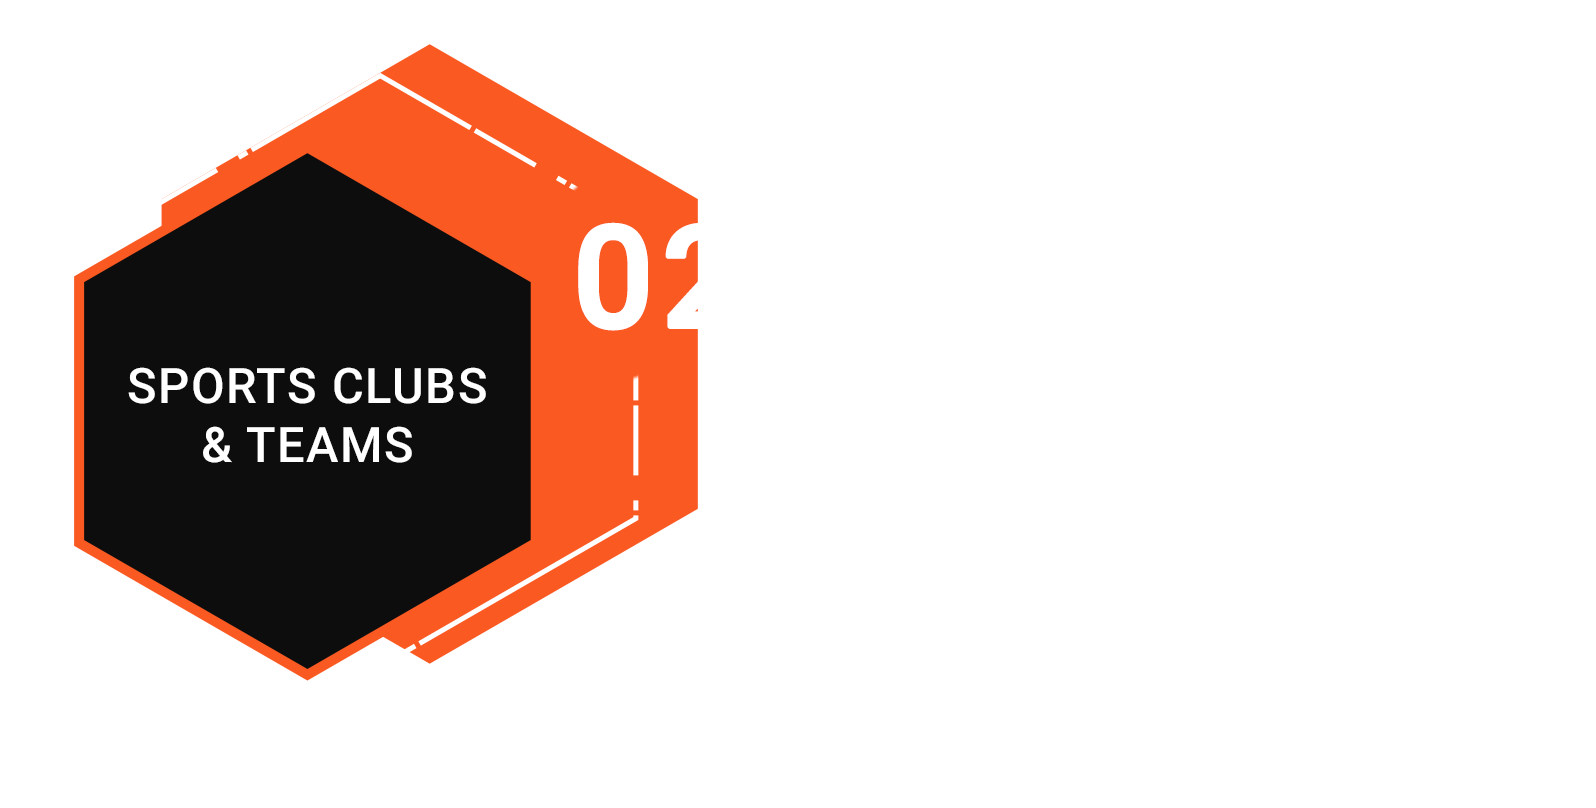 HIVE Berlin by The Esports Observer on Opportunities for Sports Clubs & Teams